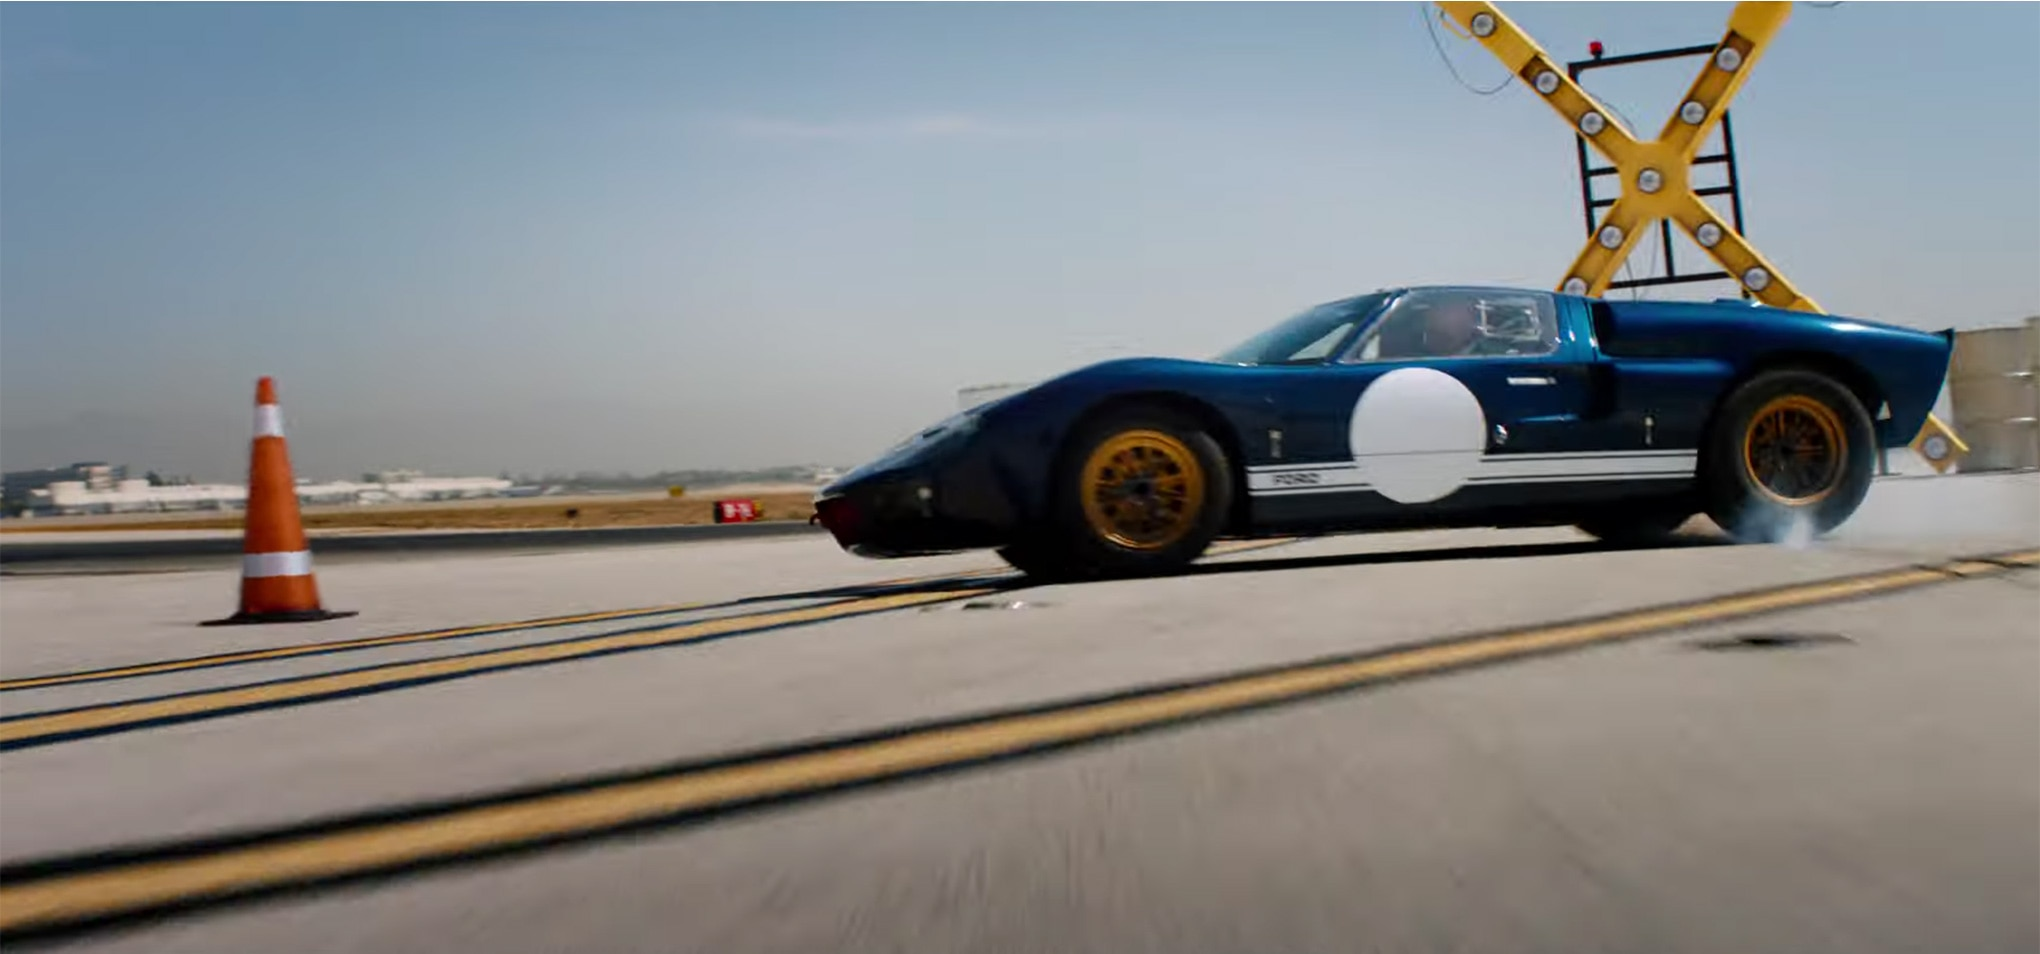 Ford v Ferrari Movie Trailer: Accuracy v Entertainment